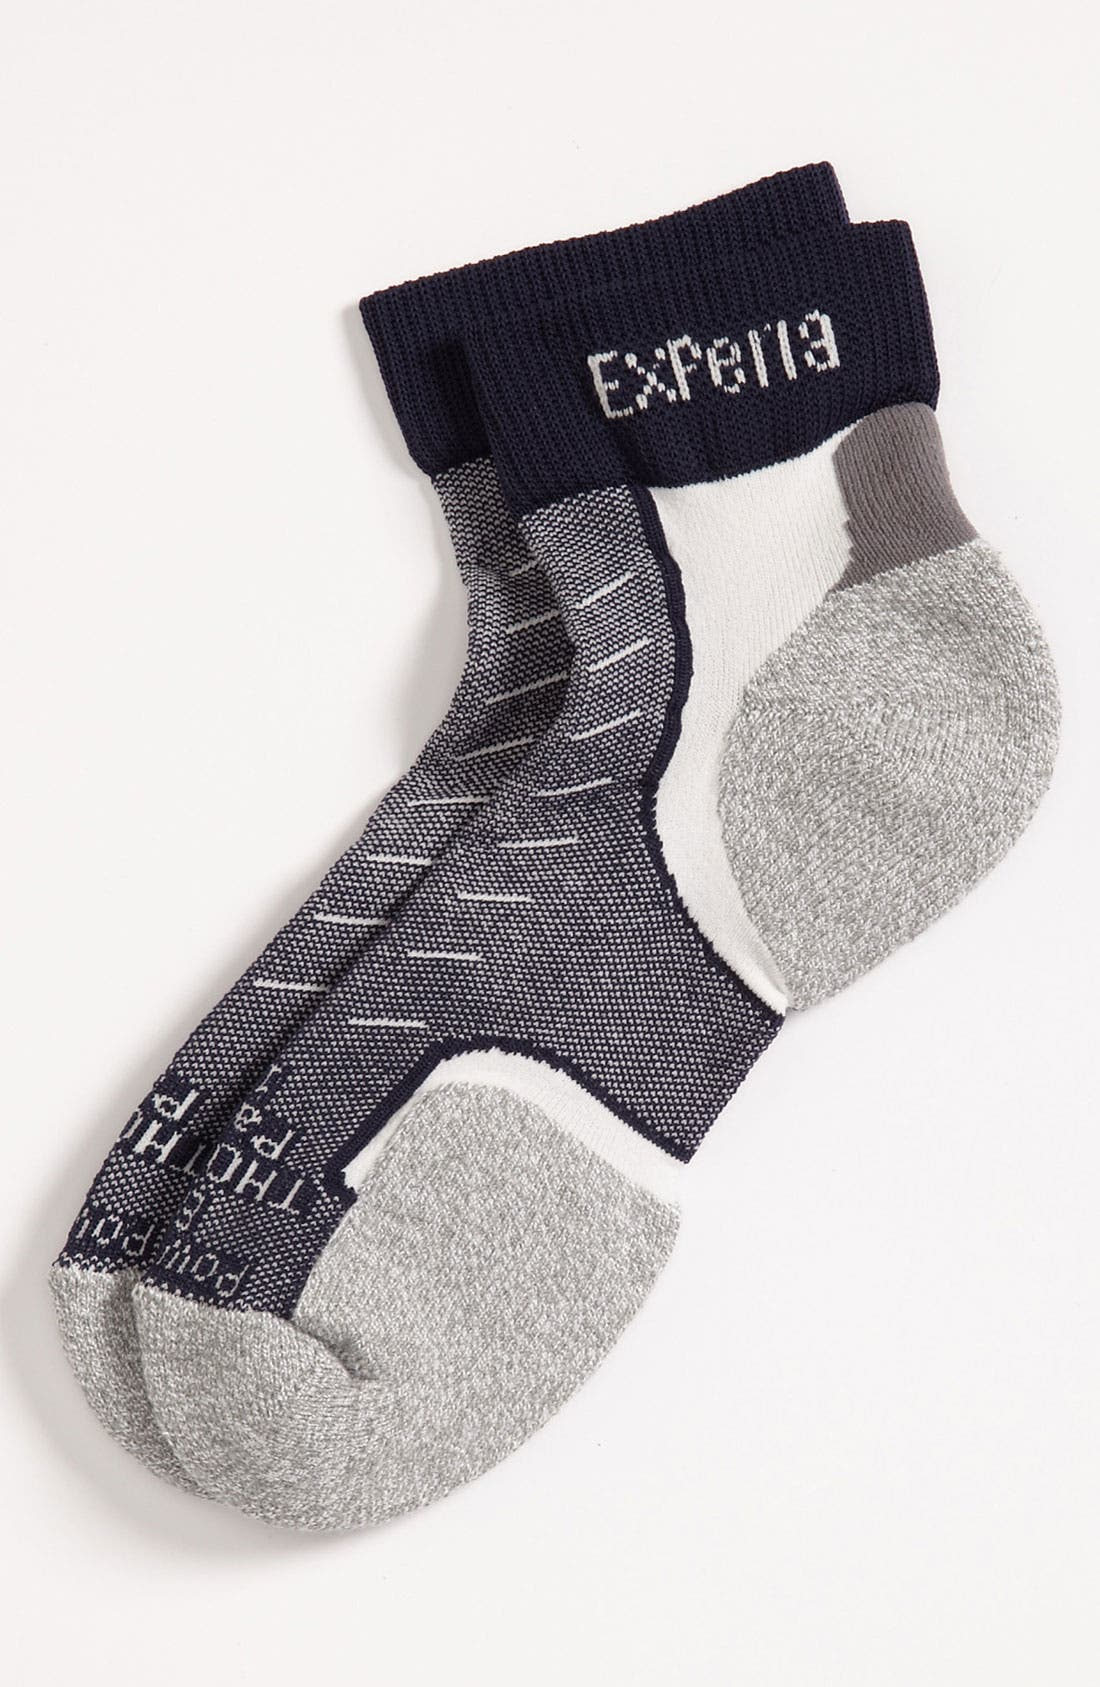 Main Image - Thorlo 'Experia' Mini Crew Socks